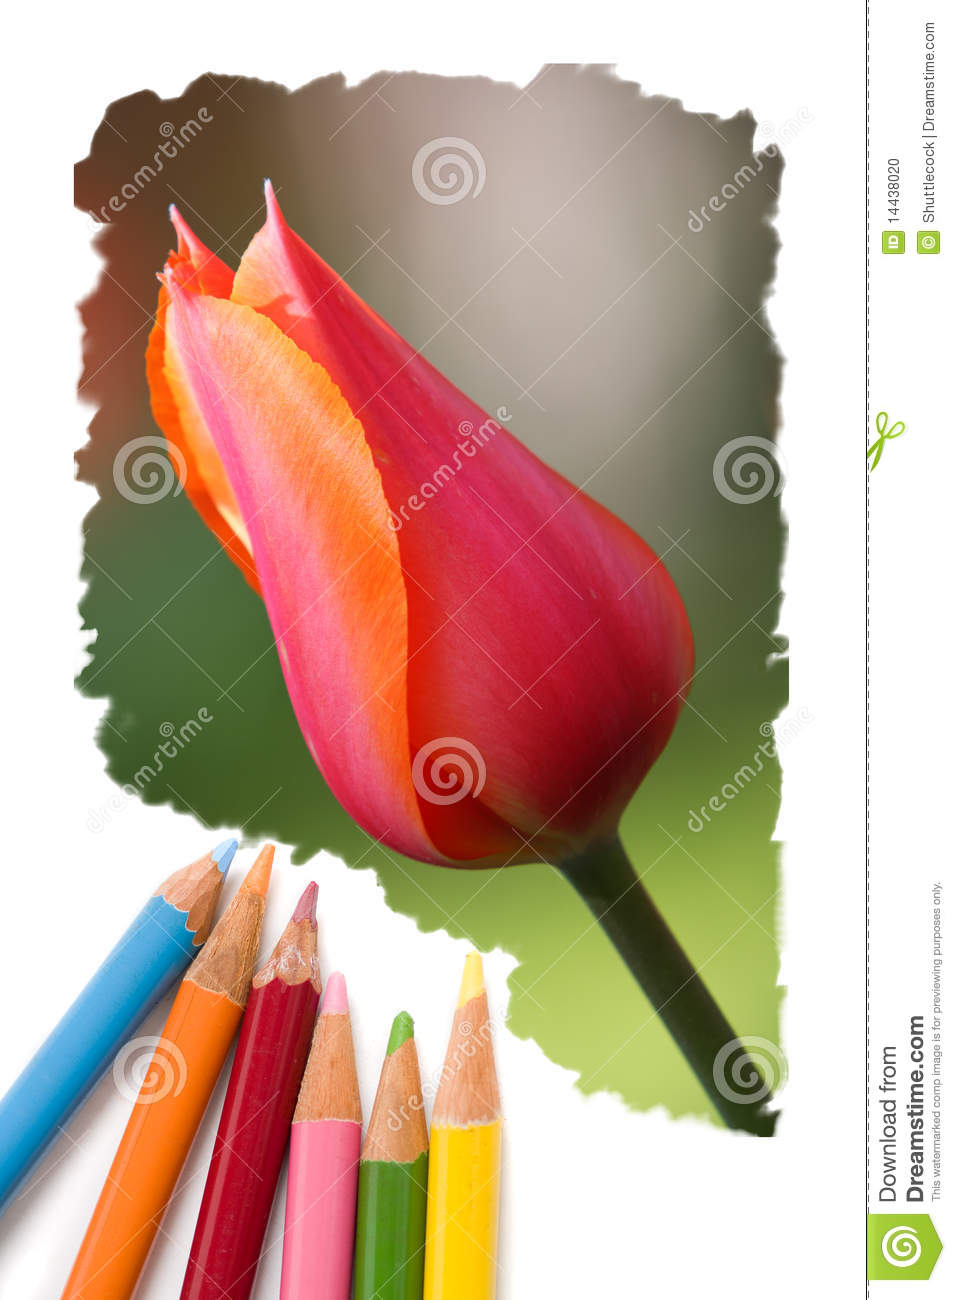 Color Pencil Drawing Tulip Flowers Stock Photo - Image of office ...